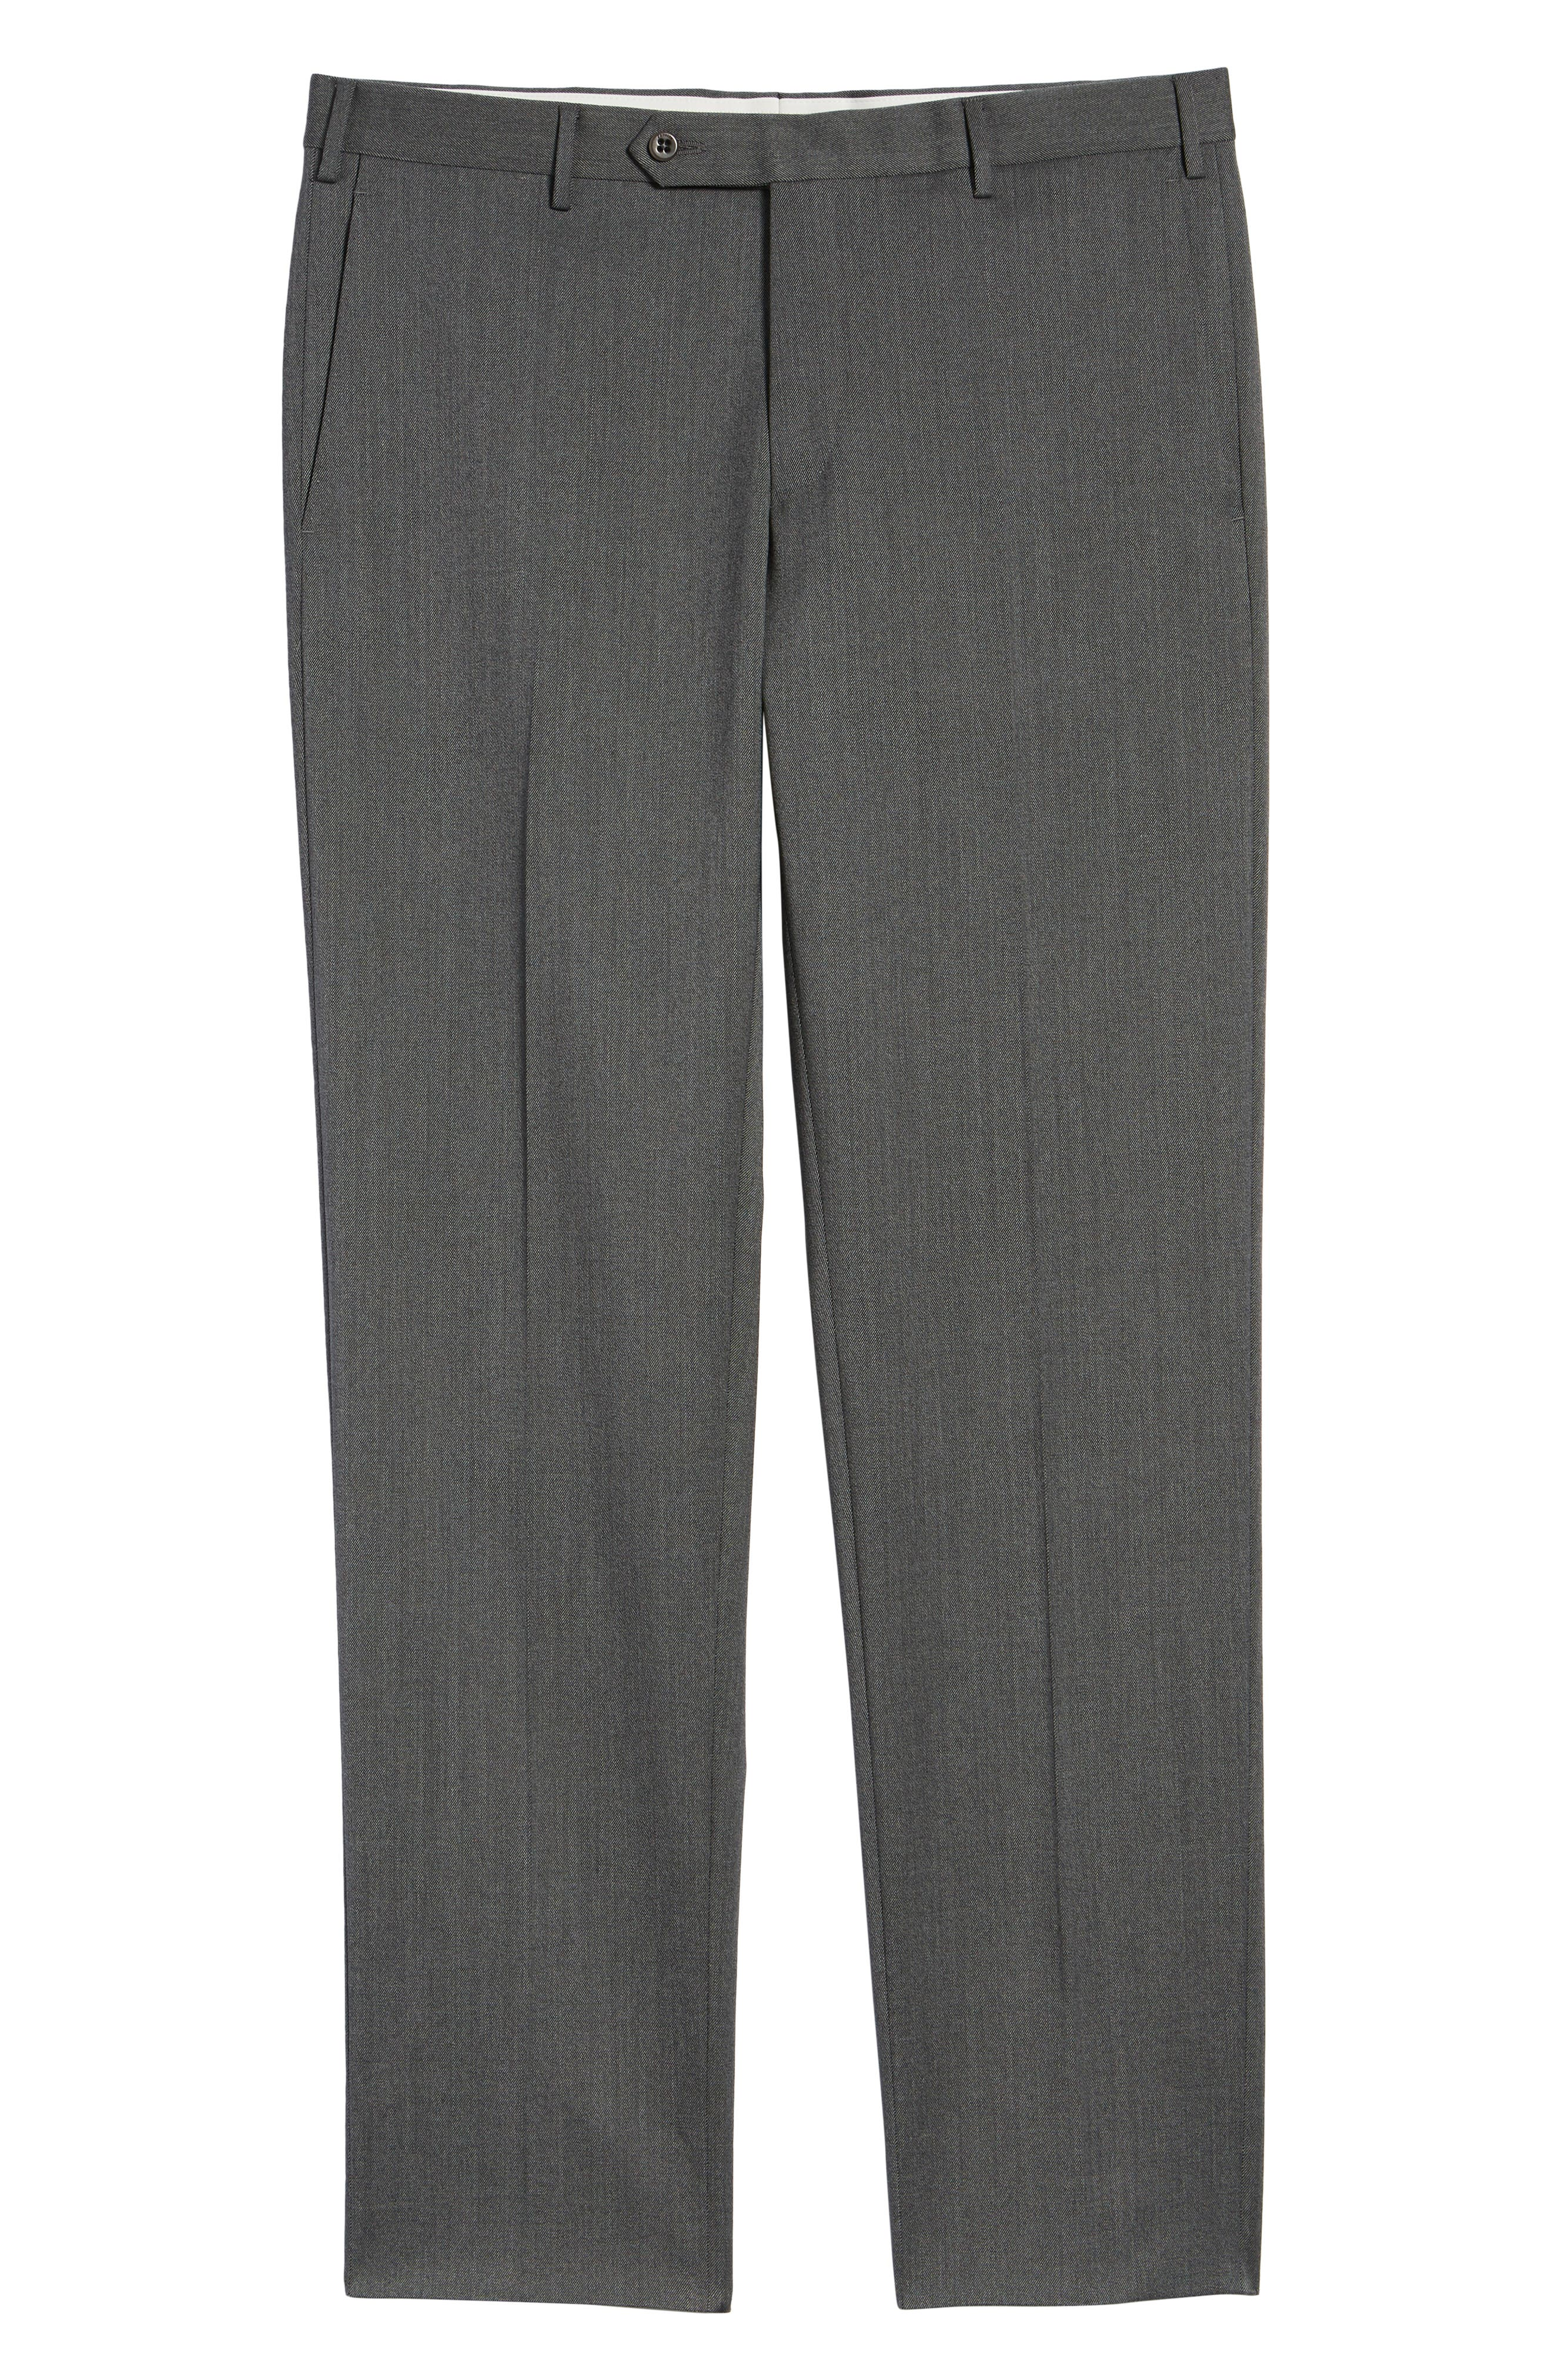 Parker Flat Front Stretch Twill Wool Trousers,                             Alternate thumbnail 6, color,                             GREY